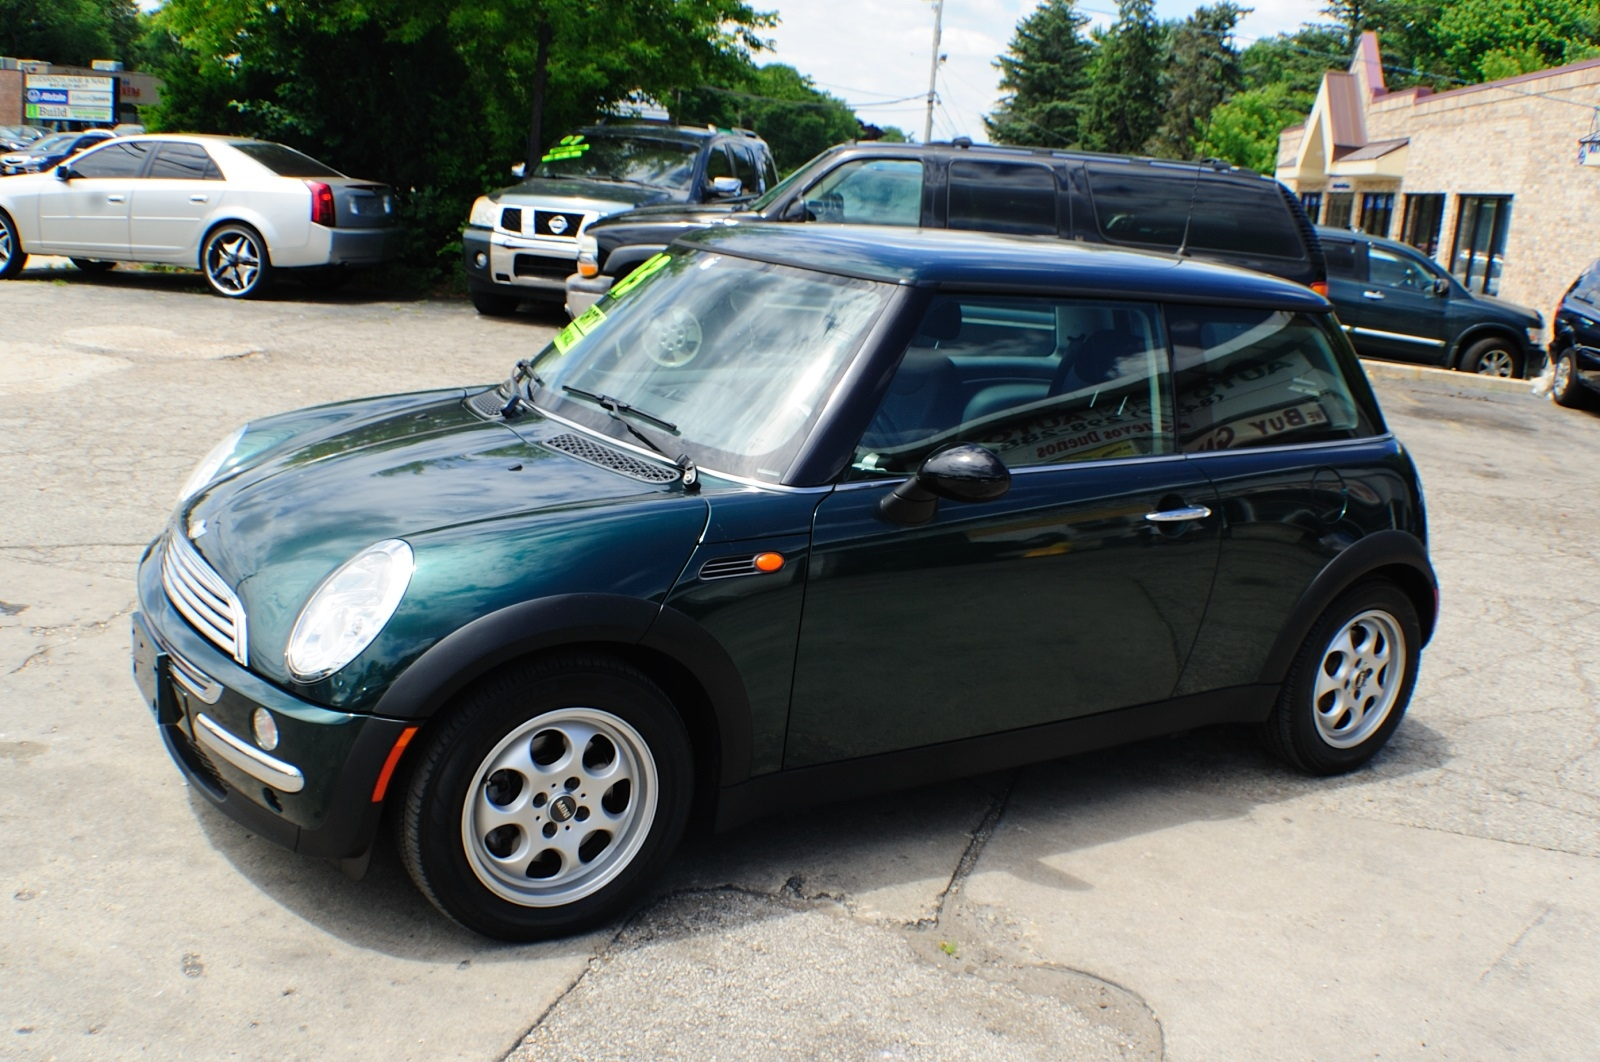 2003 Mini Cooper Green Used Sport Coupe used car sale Downers Grove Carpentersville Cicero